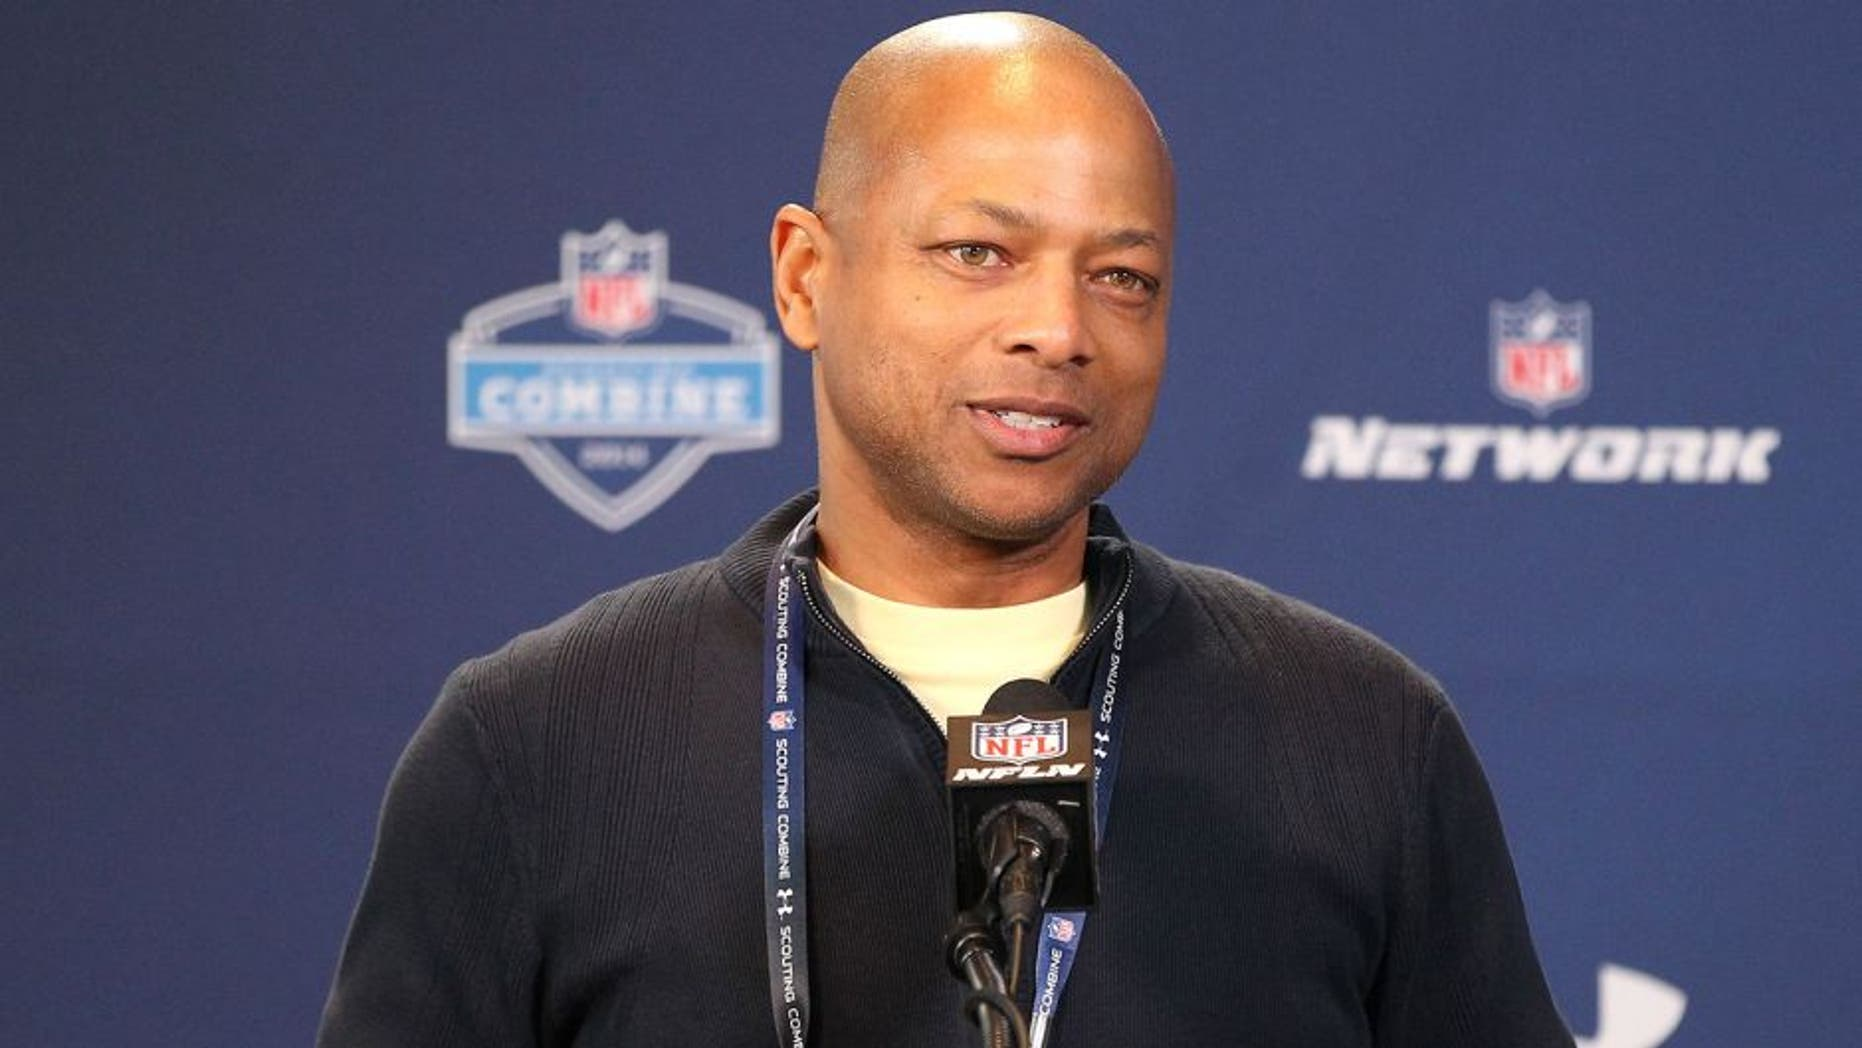 Feb 22, 2014; Indianapolis, IN, USA; New York Giants general manager Jerry Reese speaks at the NFL Combine at Lucas Oil Stadium. Mandatory Credit: Pat Lovell-USA TODAY Sports